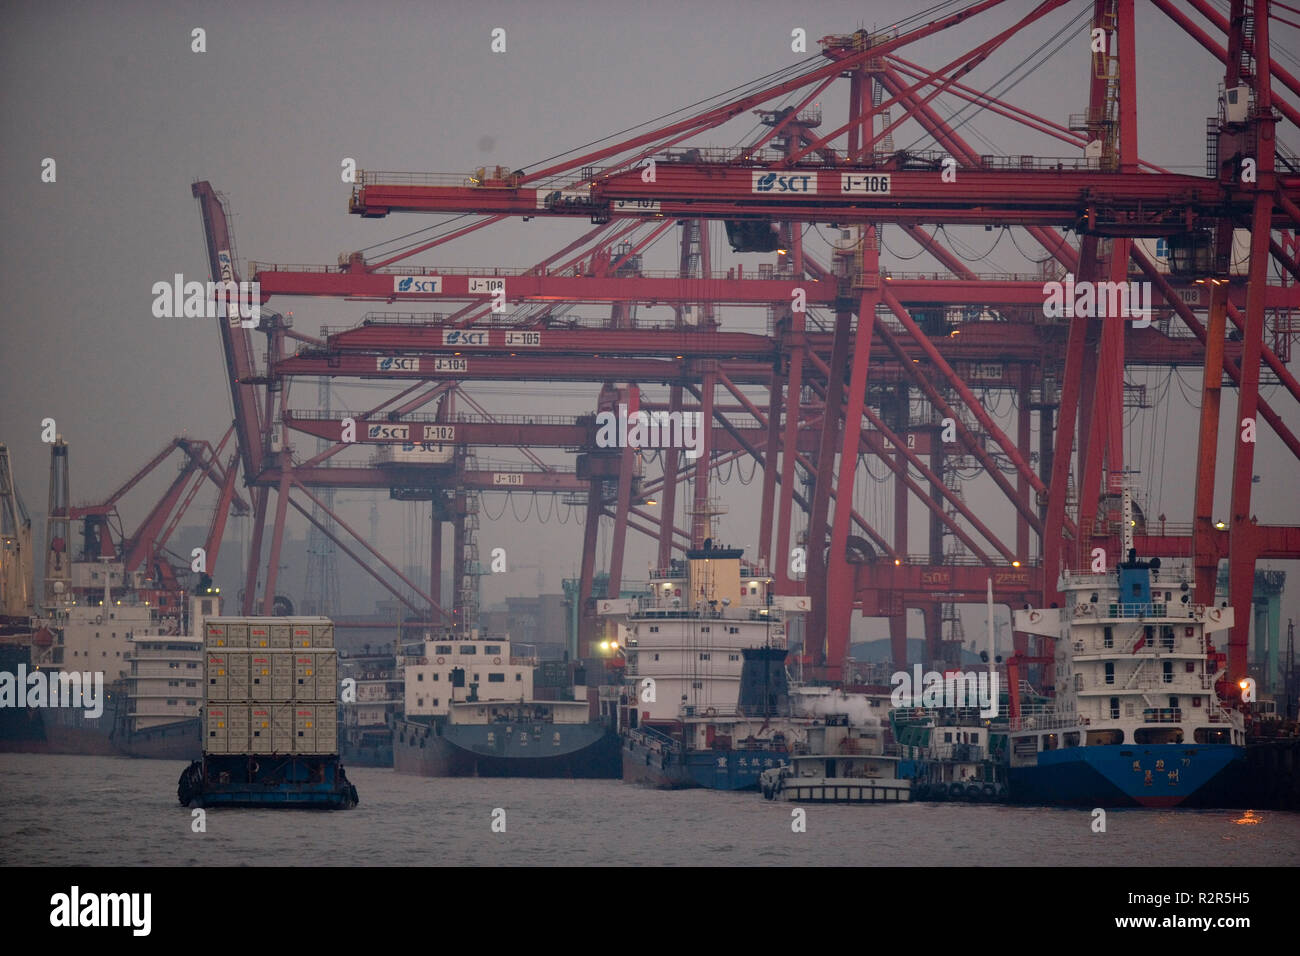 Container ships docked in a shipping port. - Stock Image